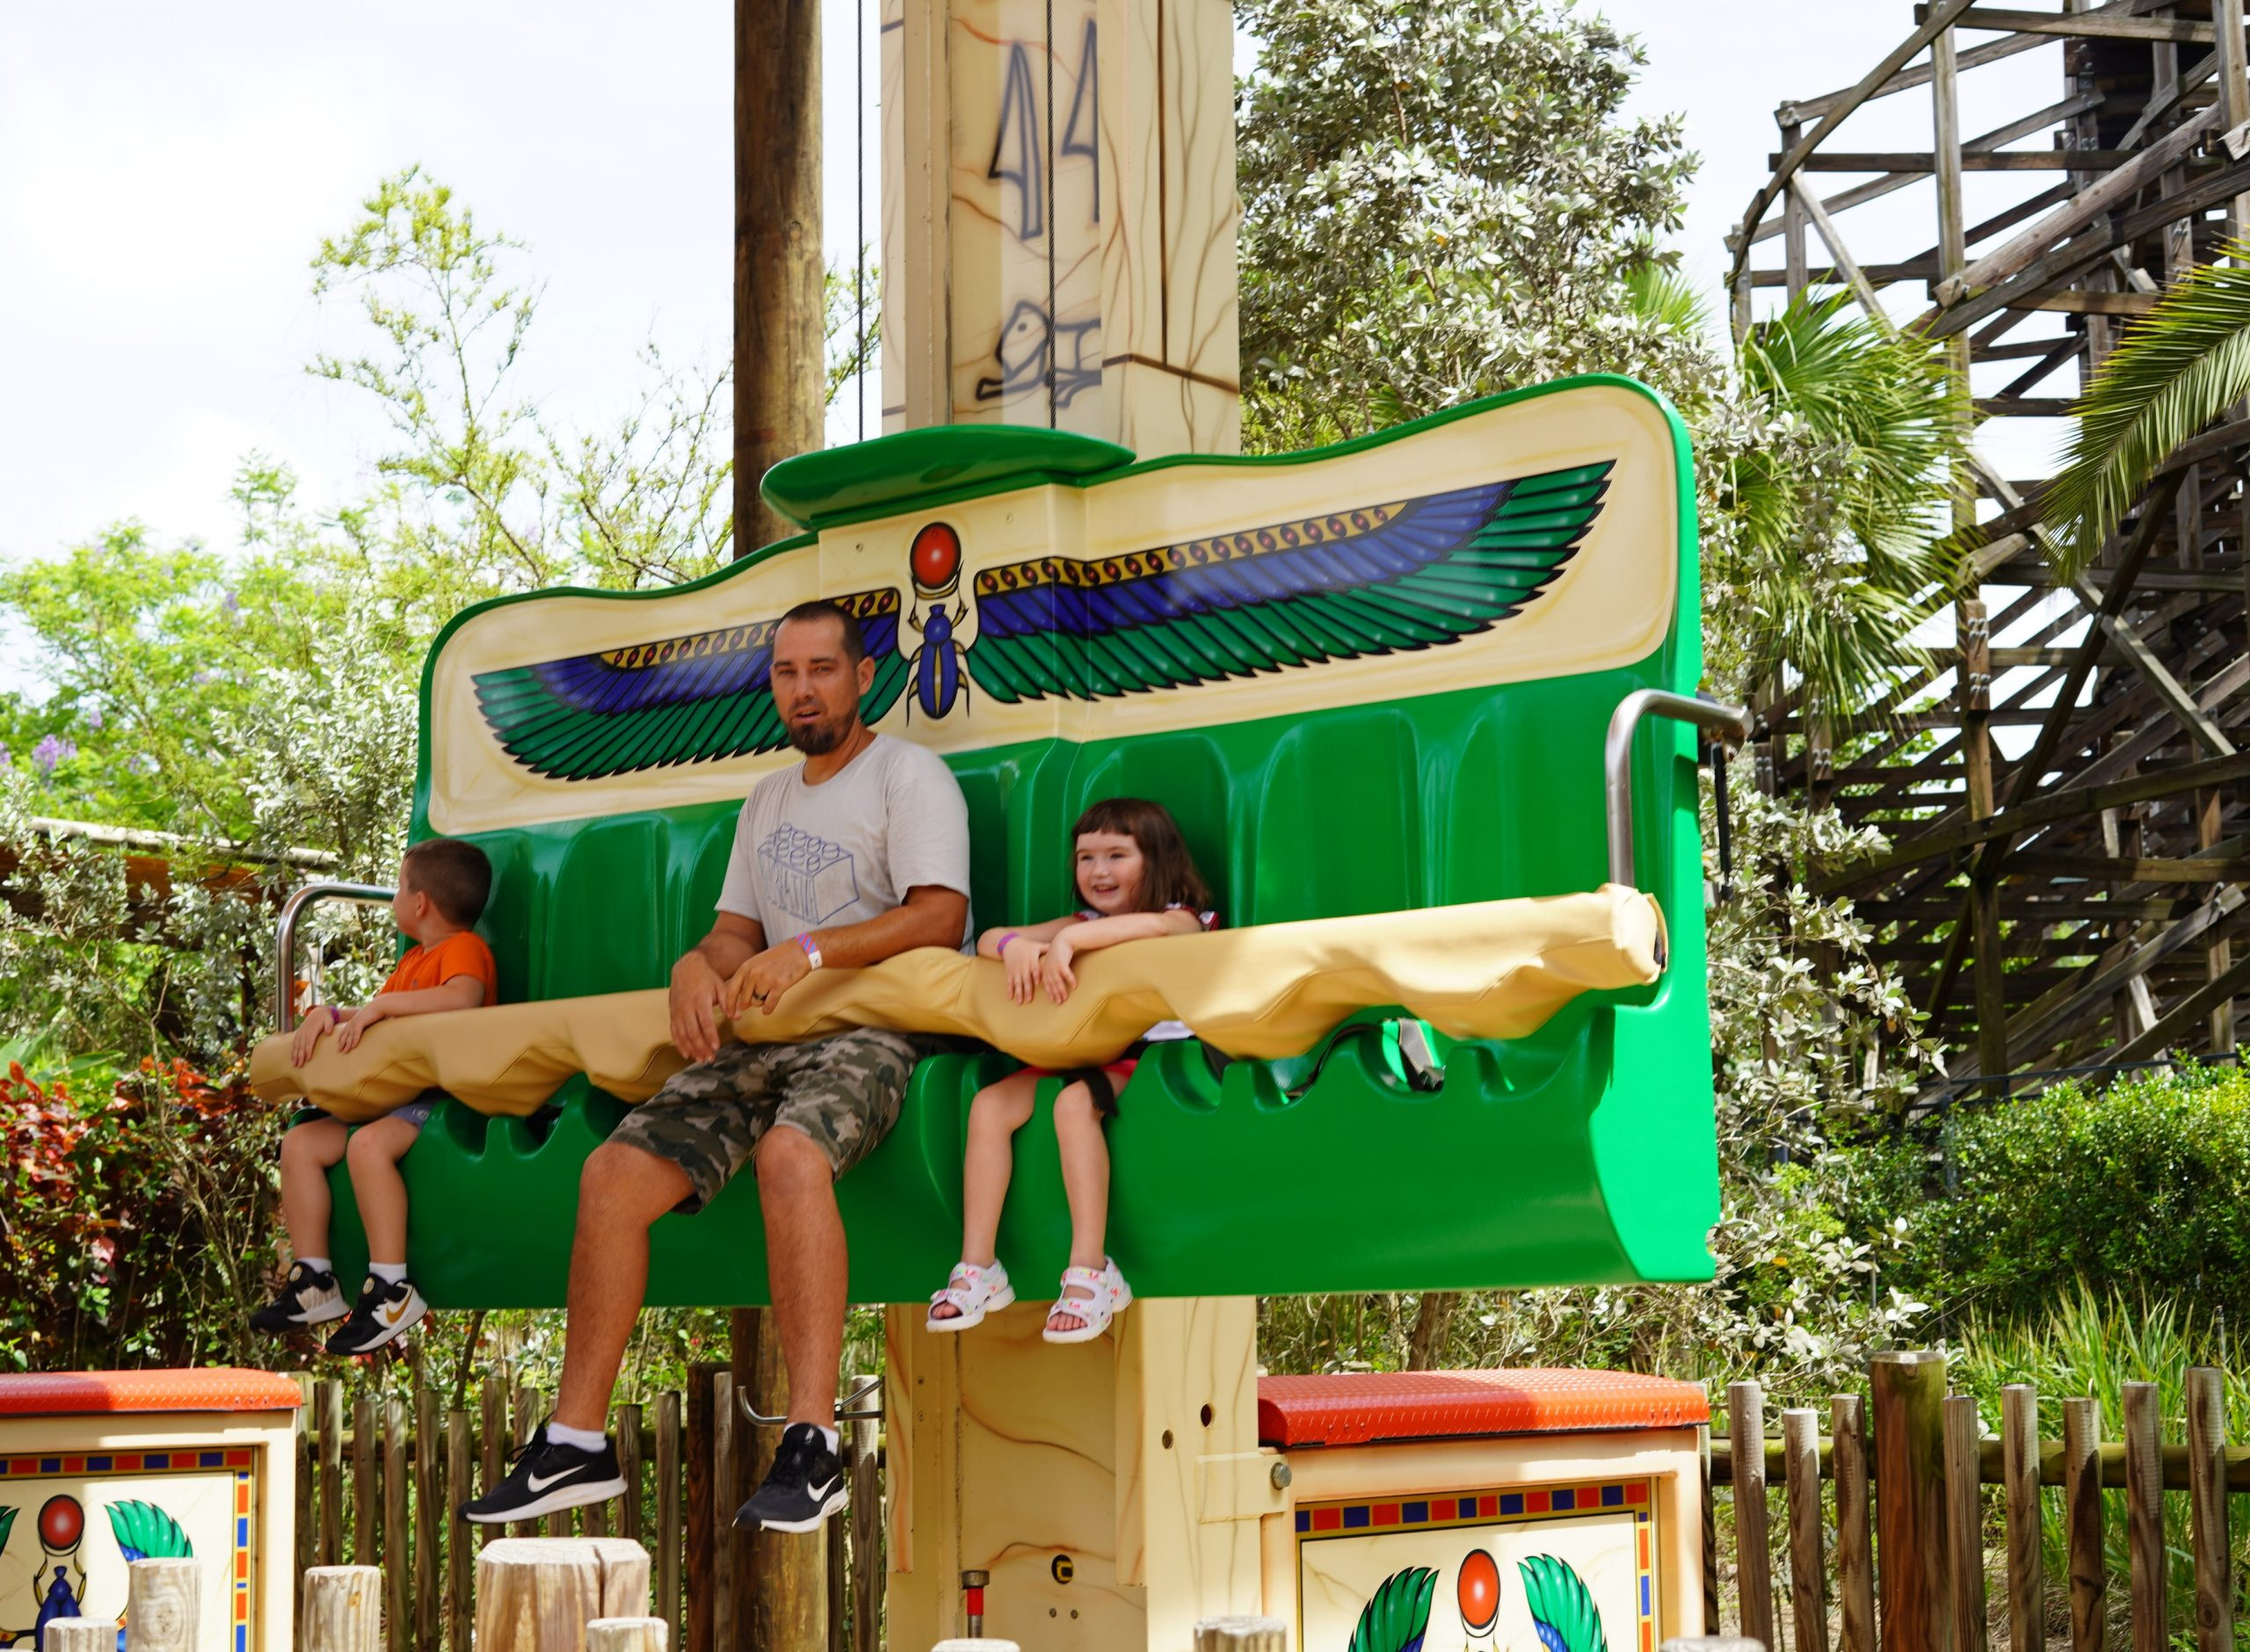 Dad with two kids on a ride at LEGOLAND. | Guide to LEGOLAND Florida